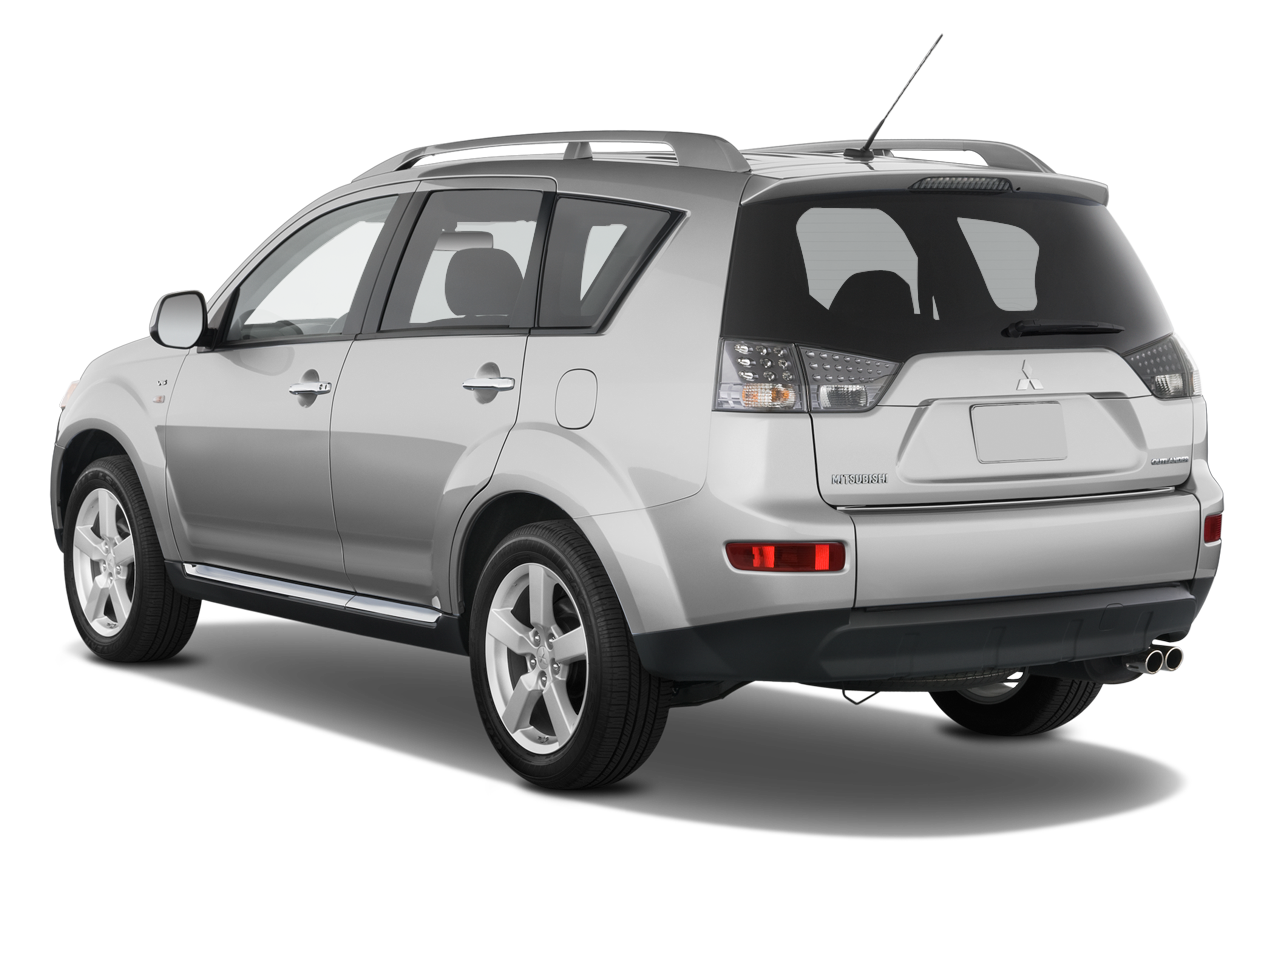 First Look 2009 Mitsubishi Outlander Gt Prototype 2009 New York Auto Show Coverage New Car